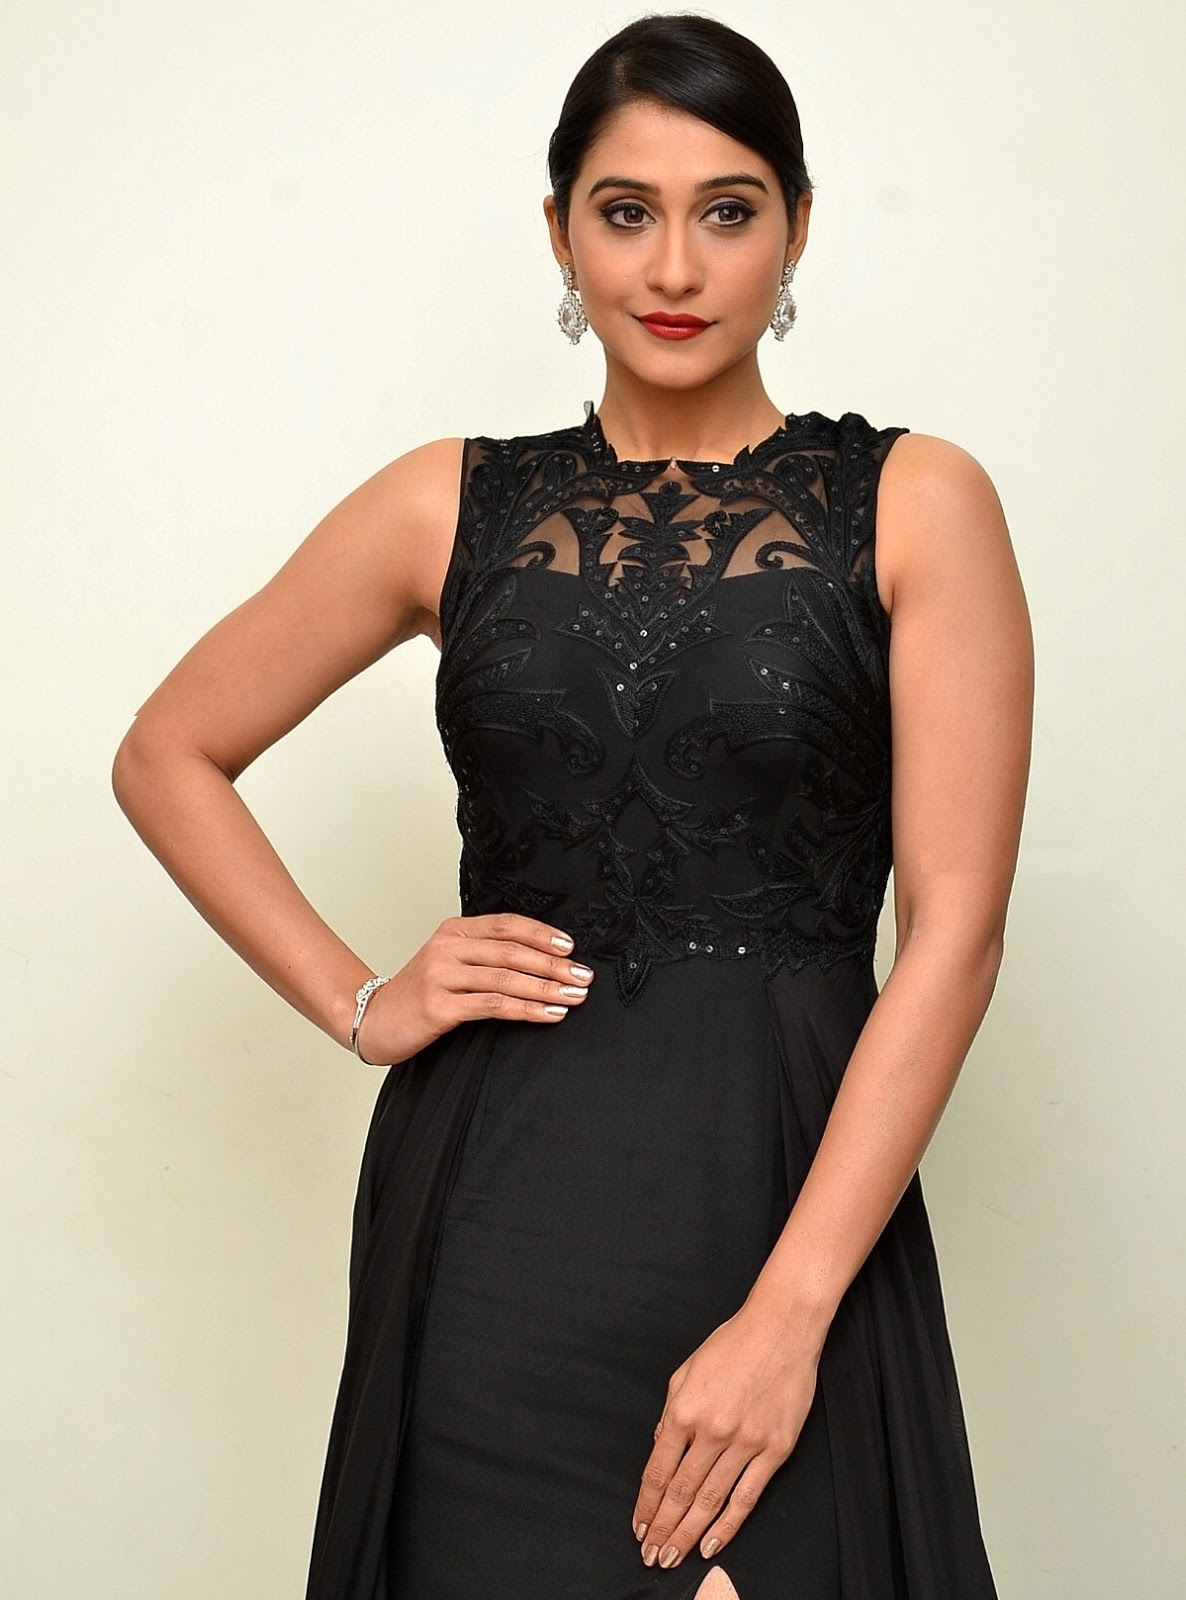 Regina Cassandra Hot 2016 Photos In Black Dress